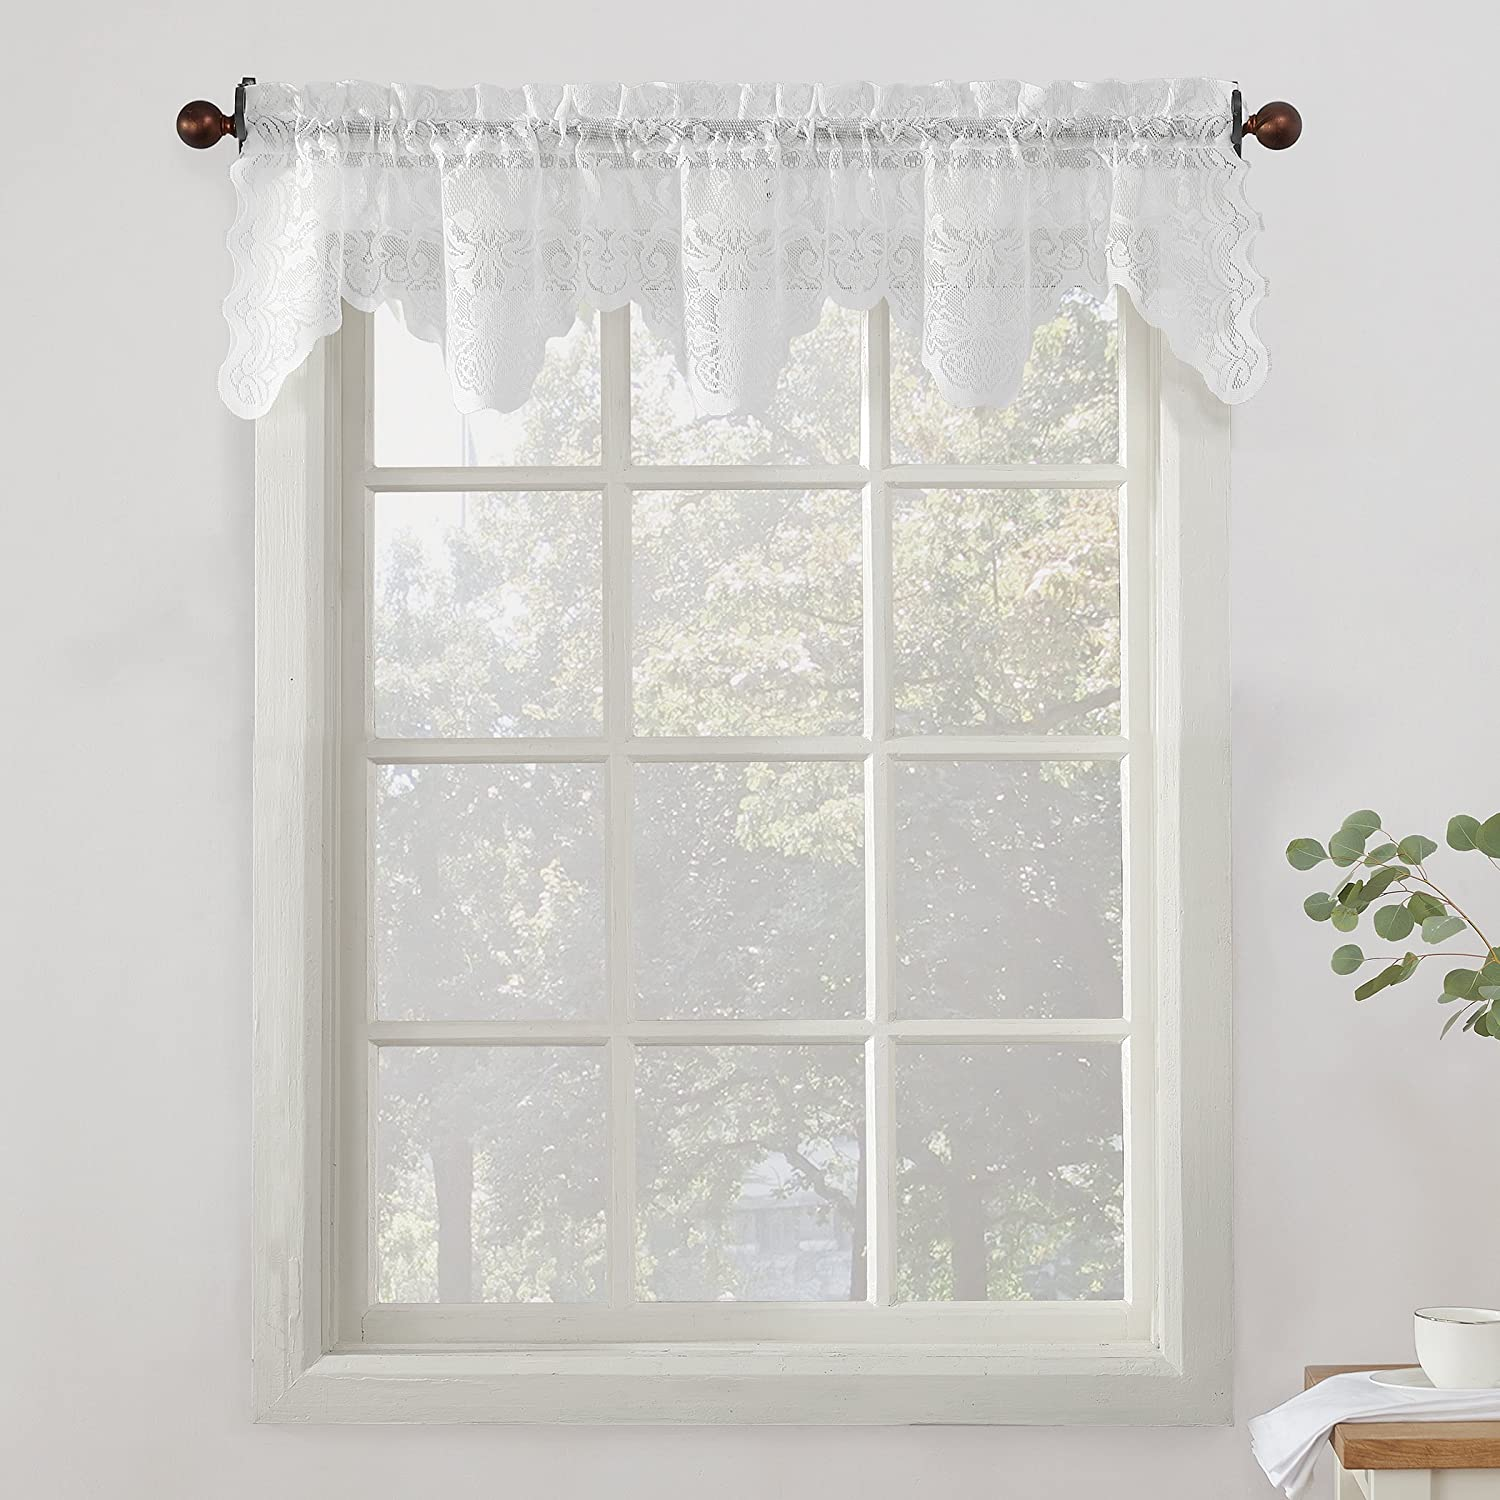 No. Popular brand in the world 918 48922 Alison Very popular Sheer Lace Valance Curtain x 1 58